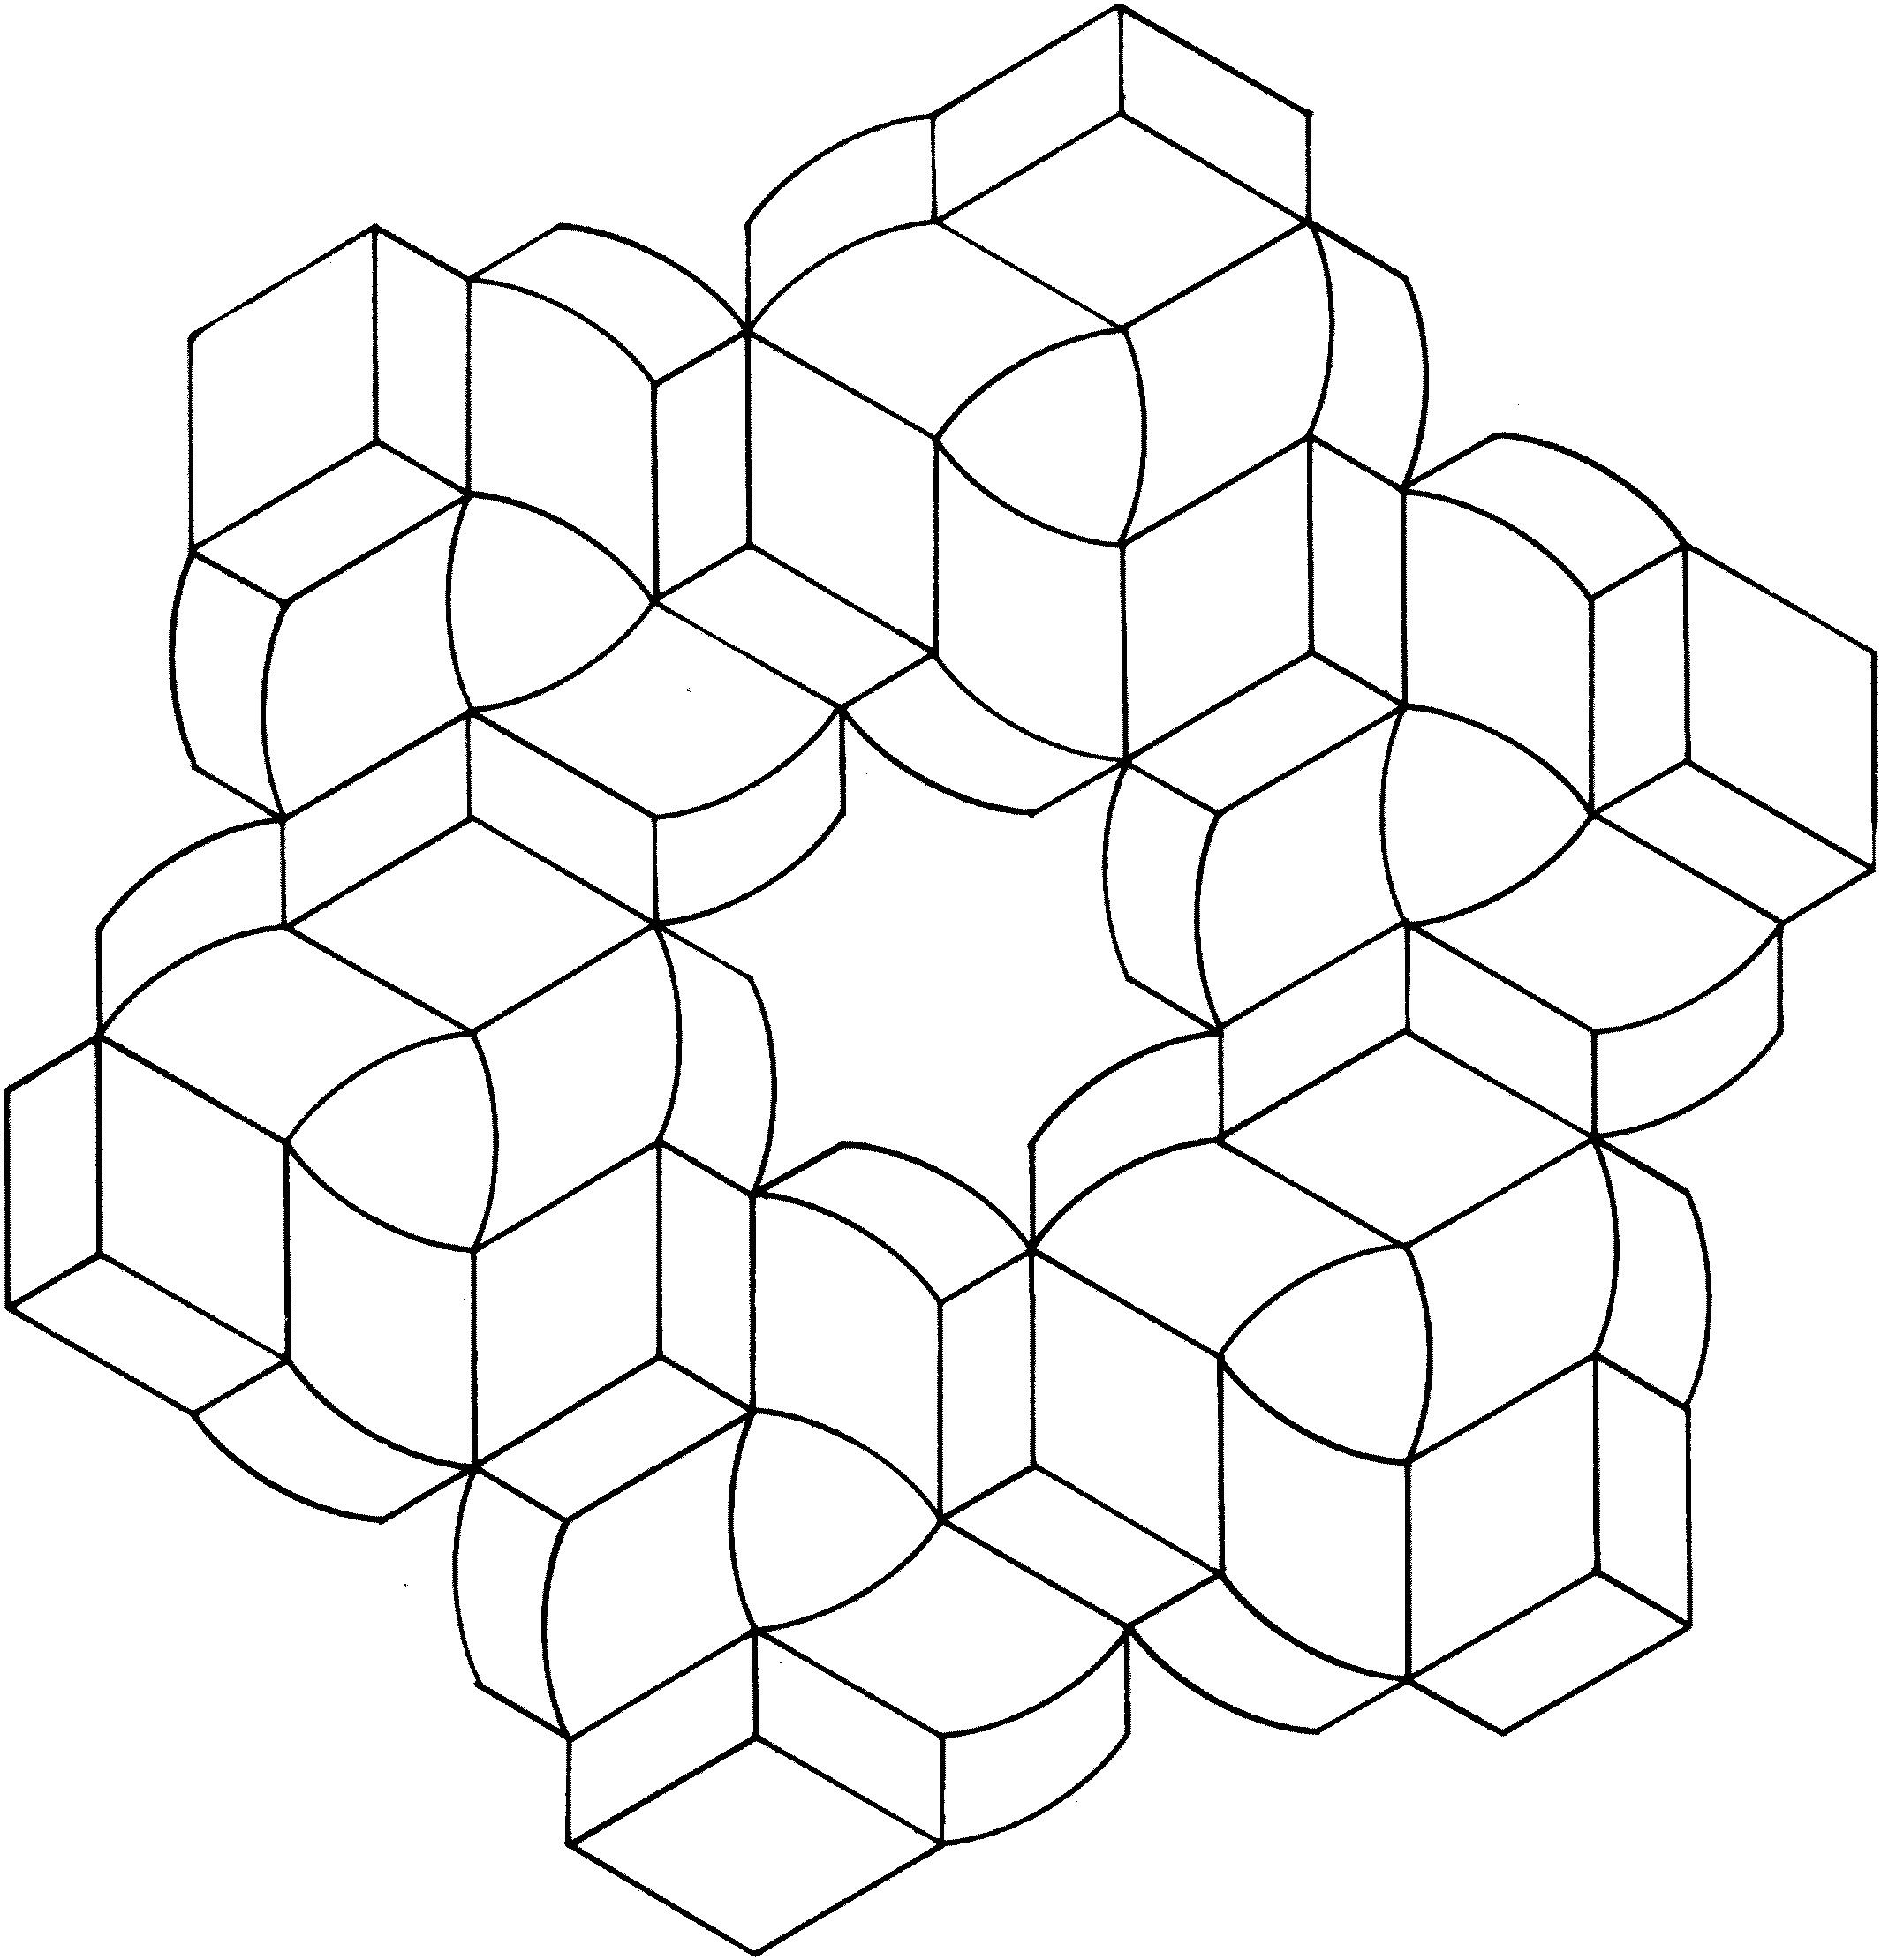 Optical Illusions Coloring Pages Coloring Pages Mandala Coloring Pages Optical Illusions